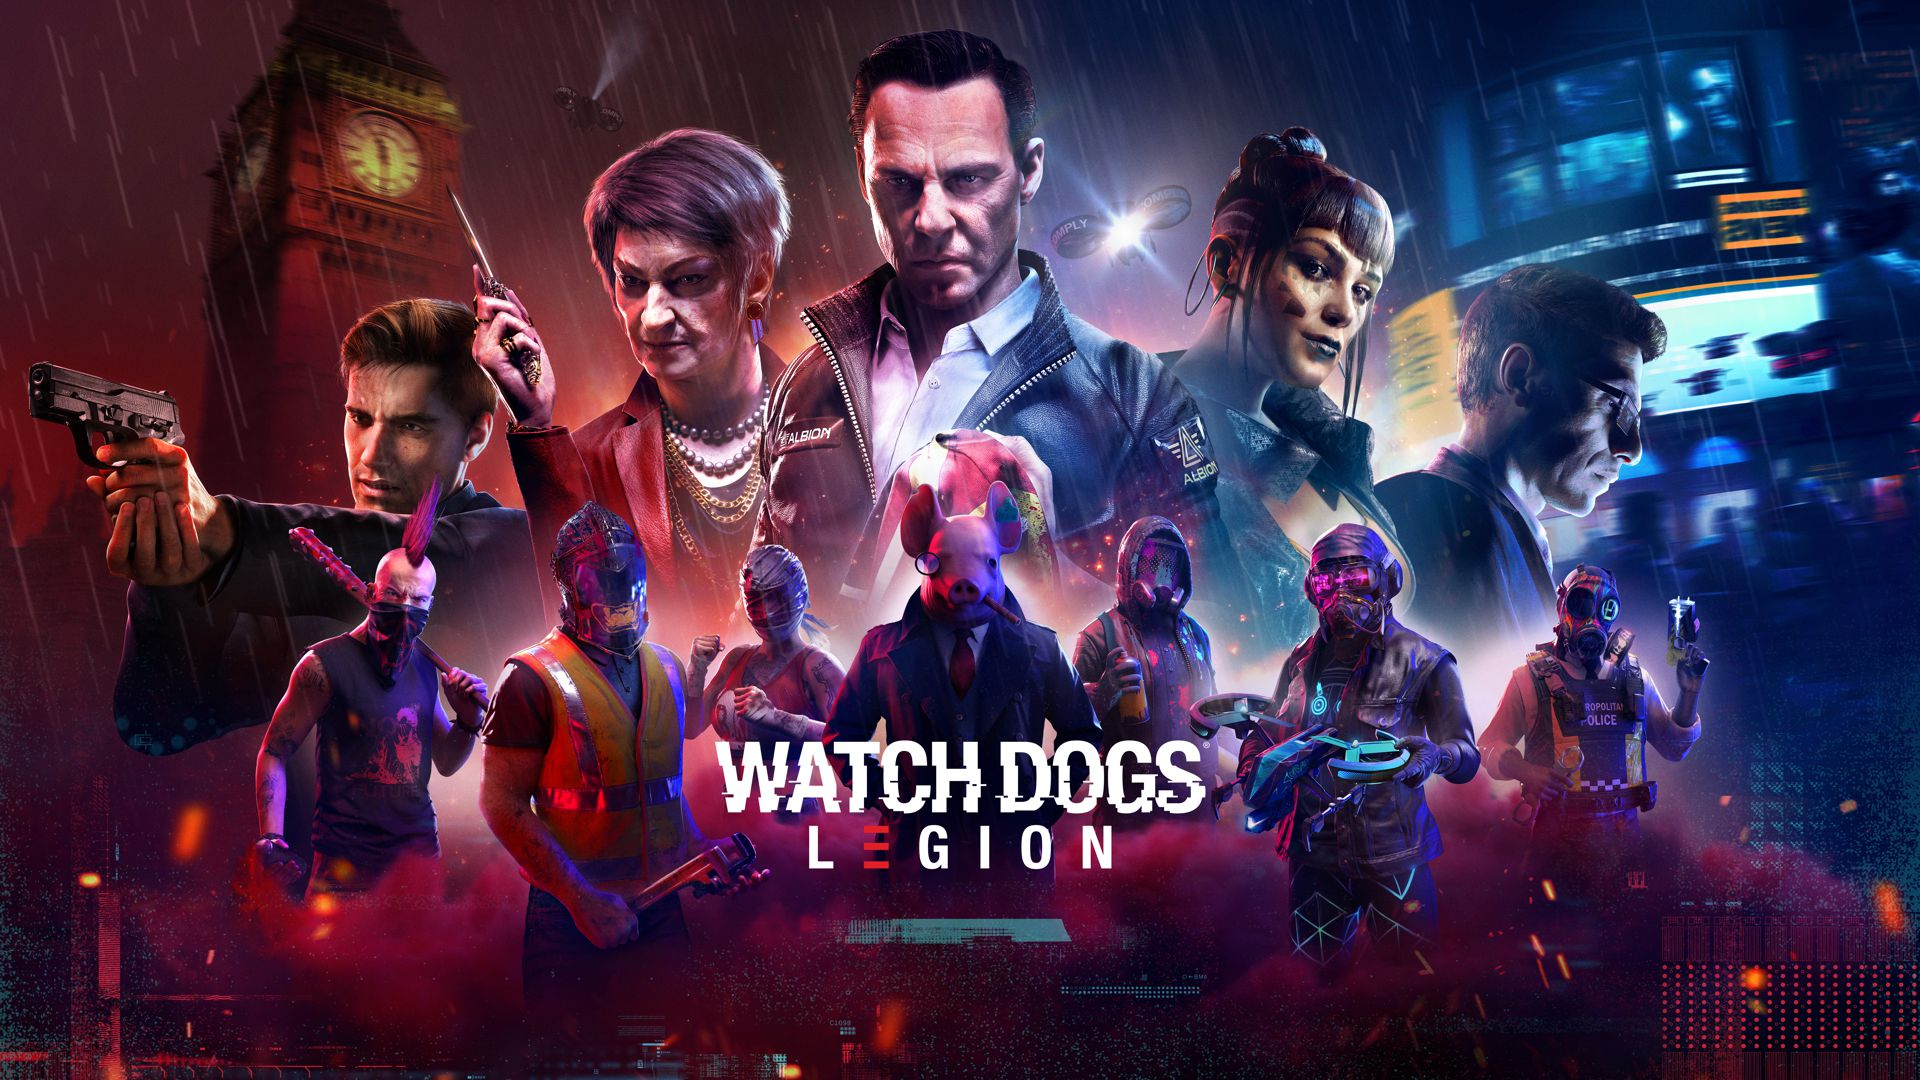 Watch Dogs Legion PC Requirements Revealed